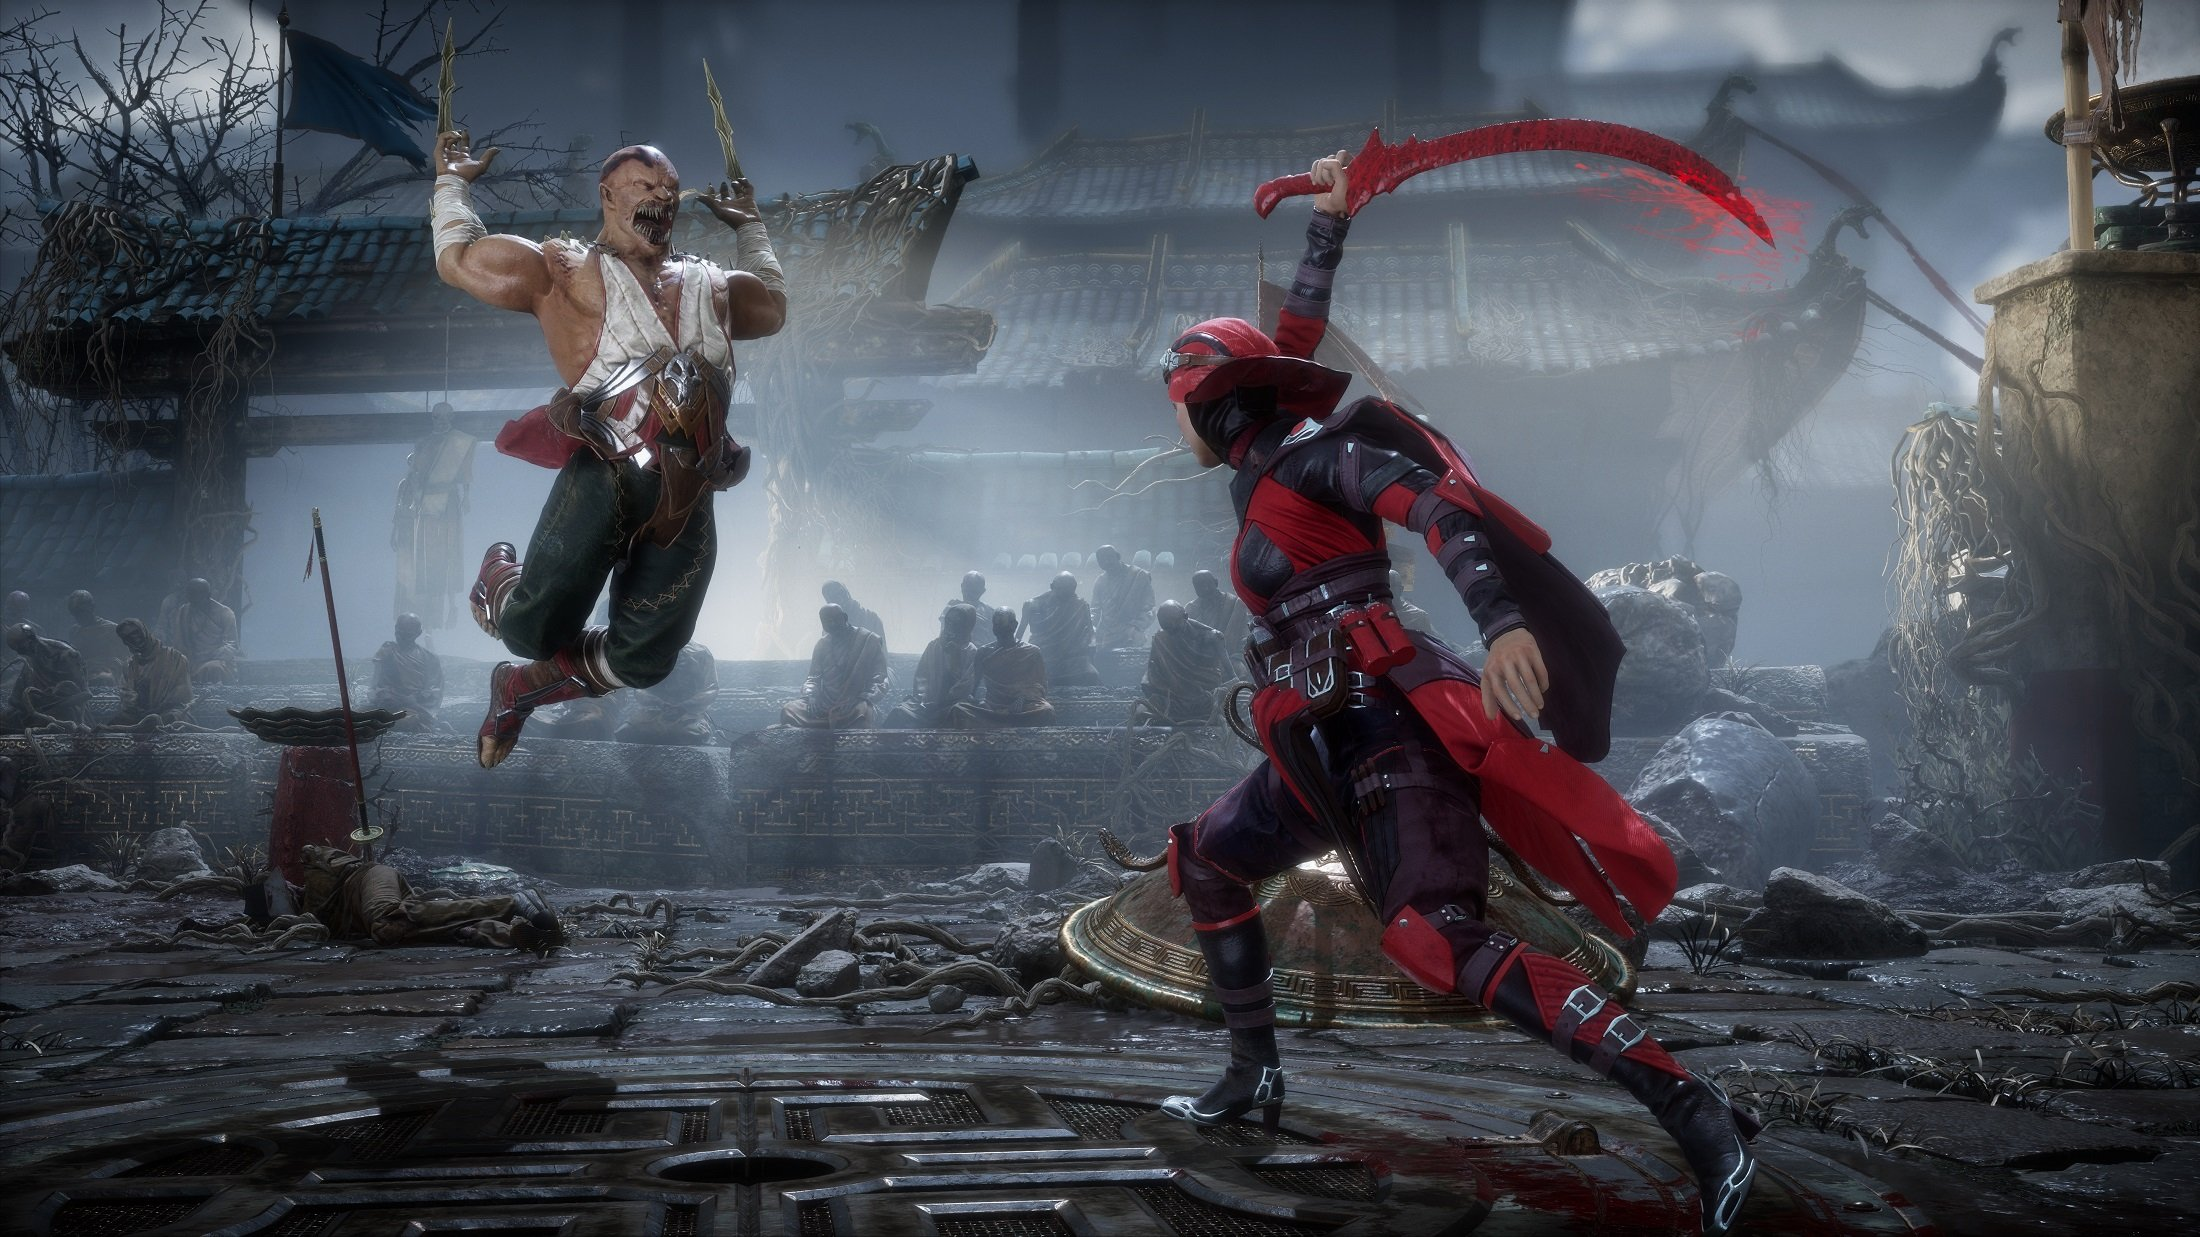 Skarlet and Baraka will both be available for play in Mortal Kombat 11.